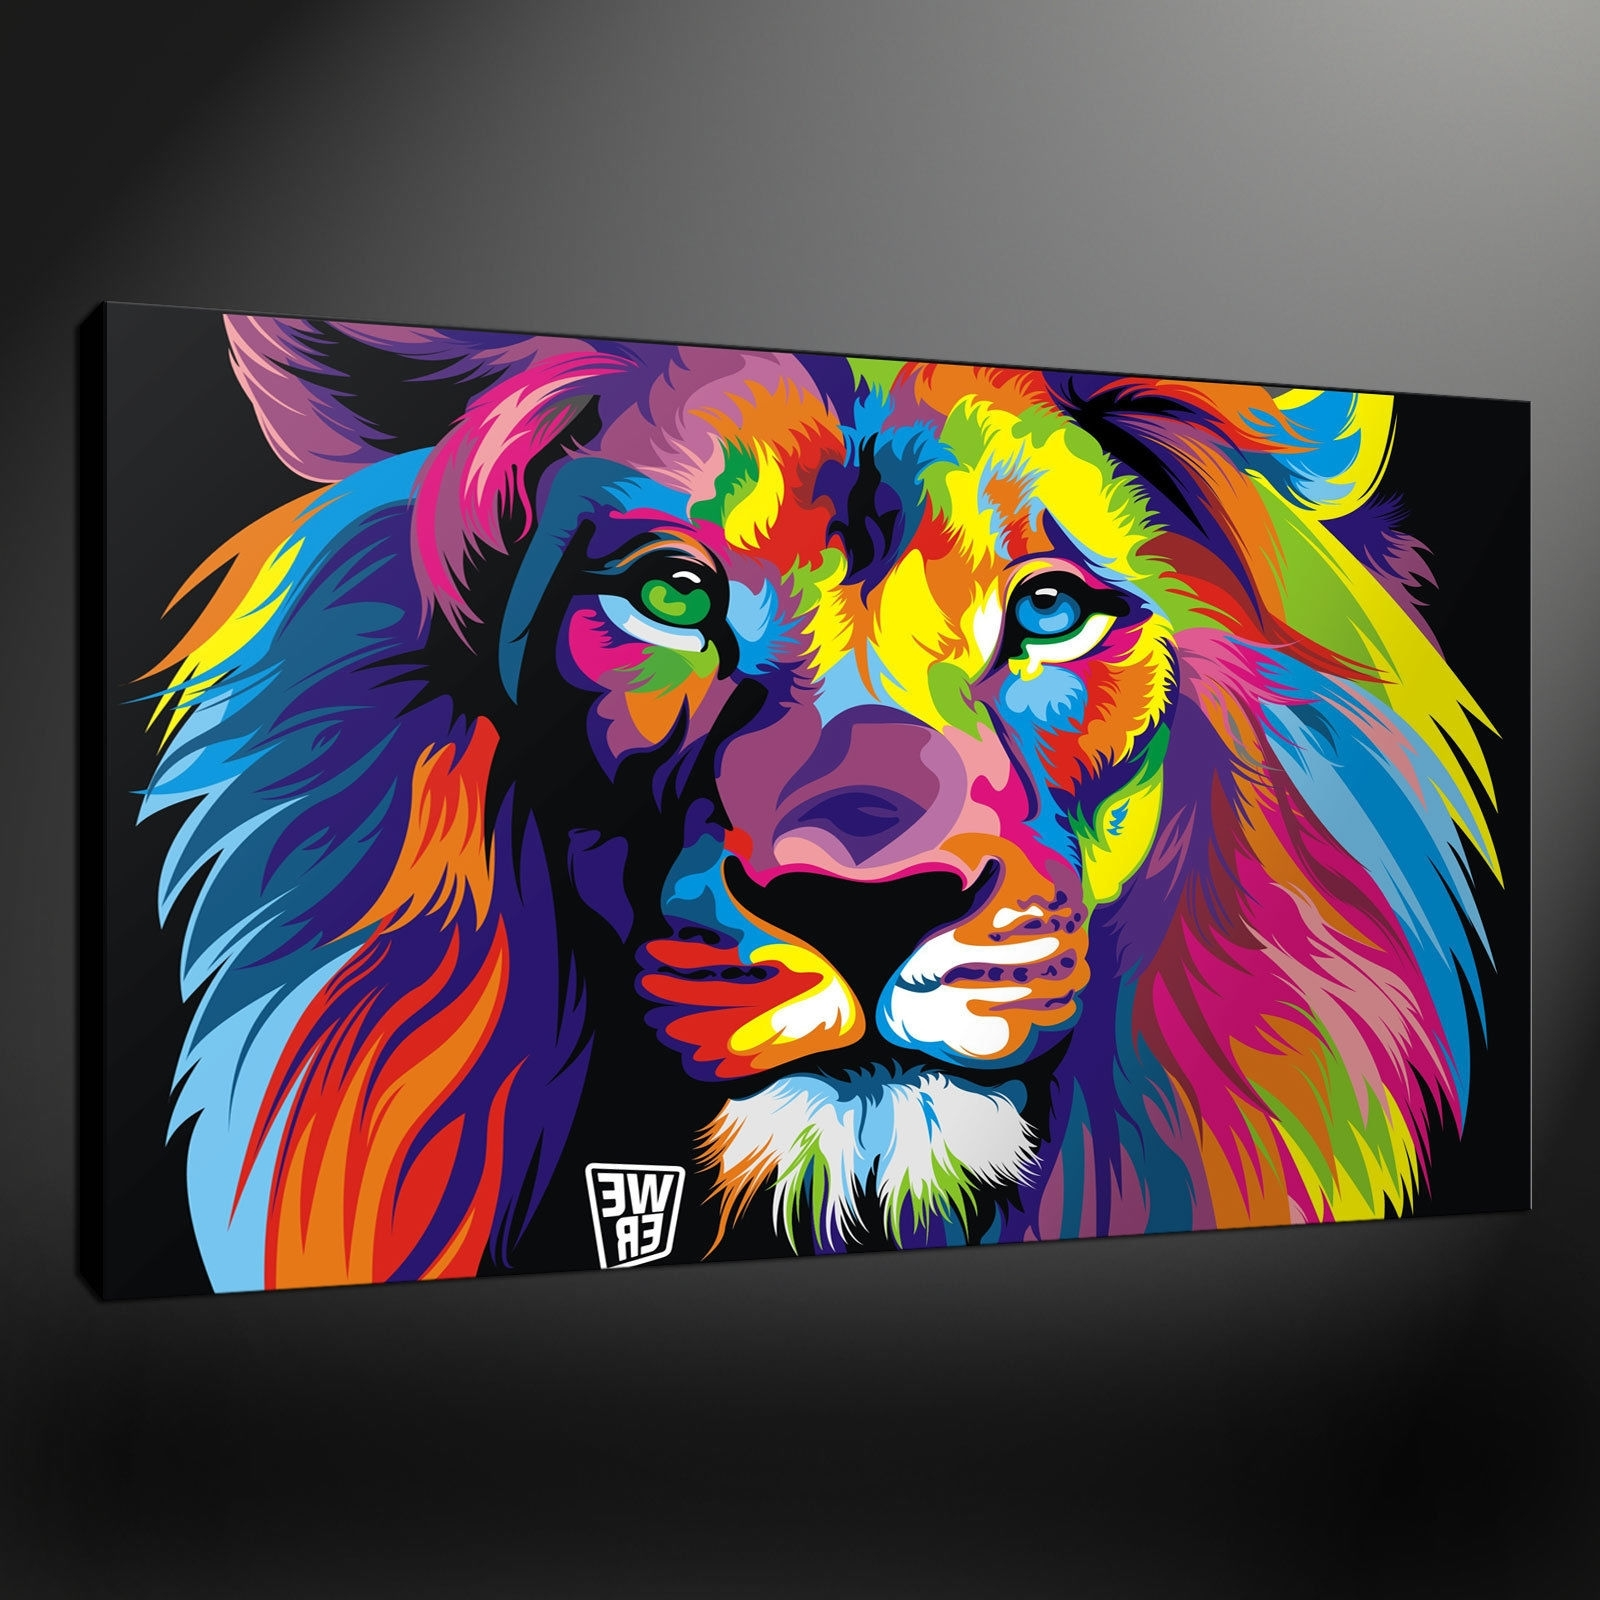 Abstract Lion Quality Canvas Print Picture Wall Art Design Free Uk Within Popular Abstract Lion Wall Art (Gallery 1 of 15)